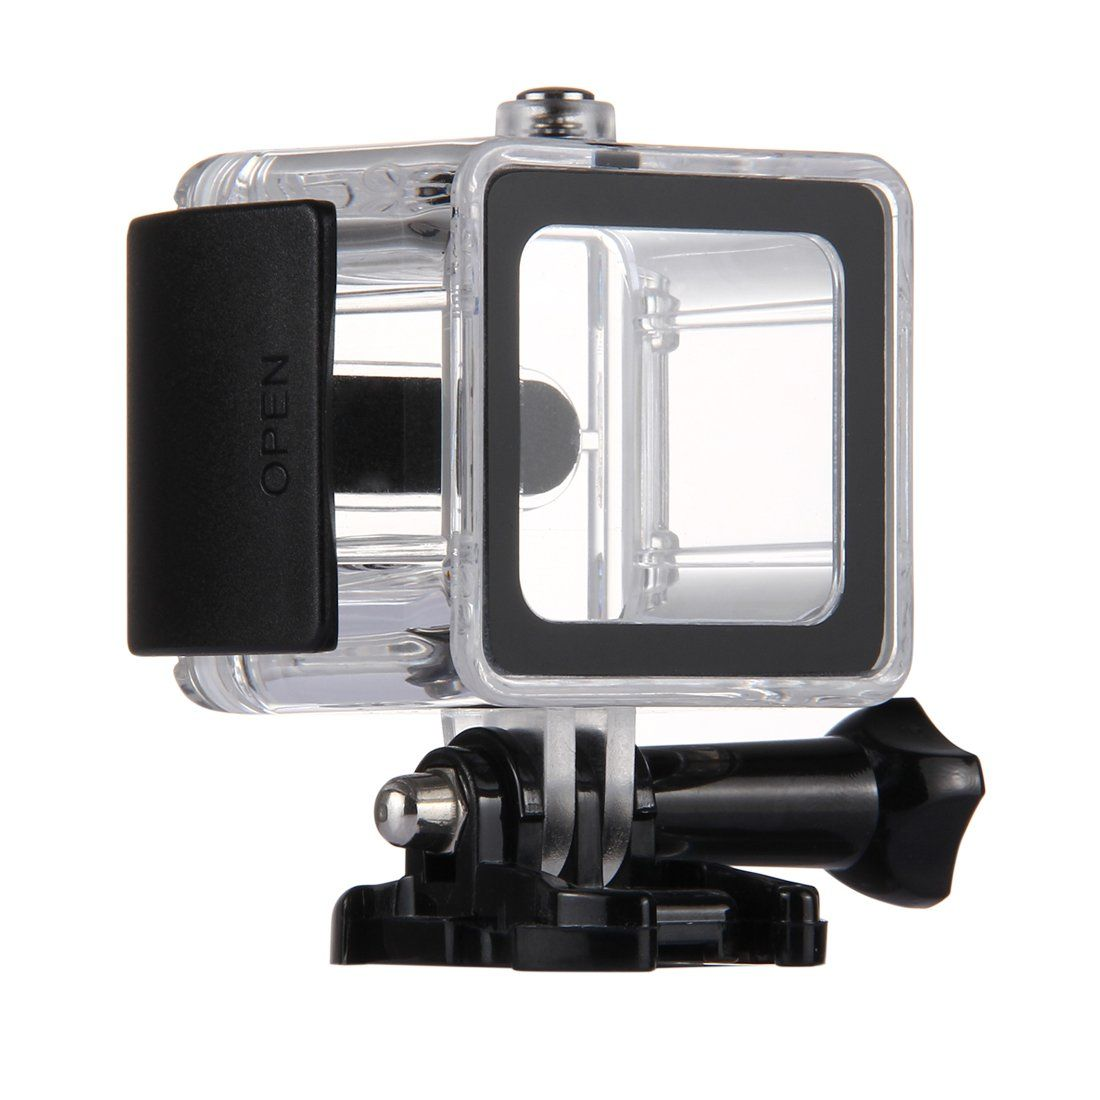 472a84537531cc PULUZ PU218 Shockproof Protective Diving Shell Waterproof Camera Housing  Diving Case Cover